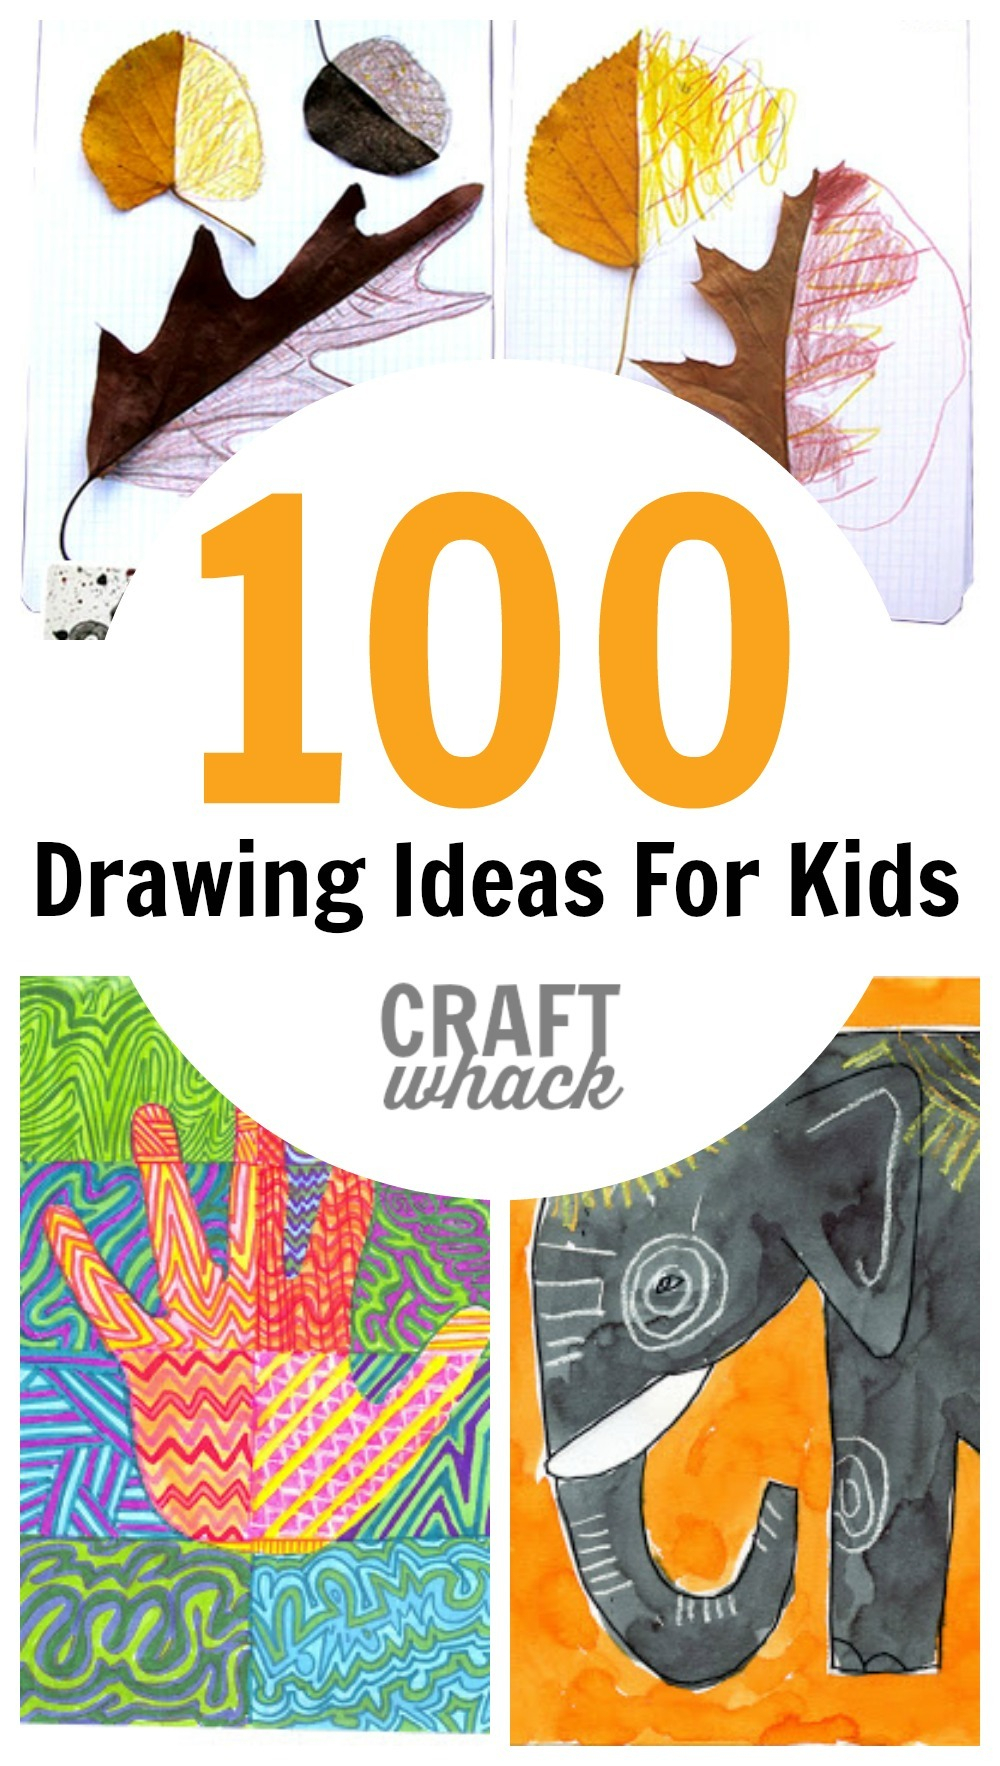 10 Unique Ideas For Kids To Draw 100 crazy cool drawing ideas for kids c2b7 craftwhack 1 2020